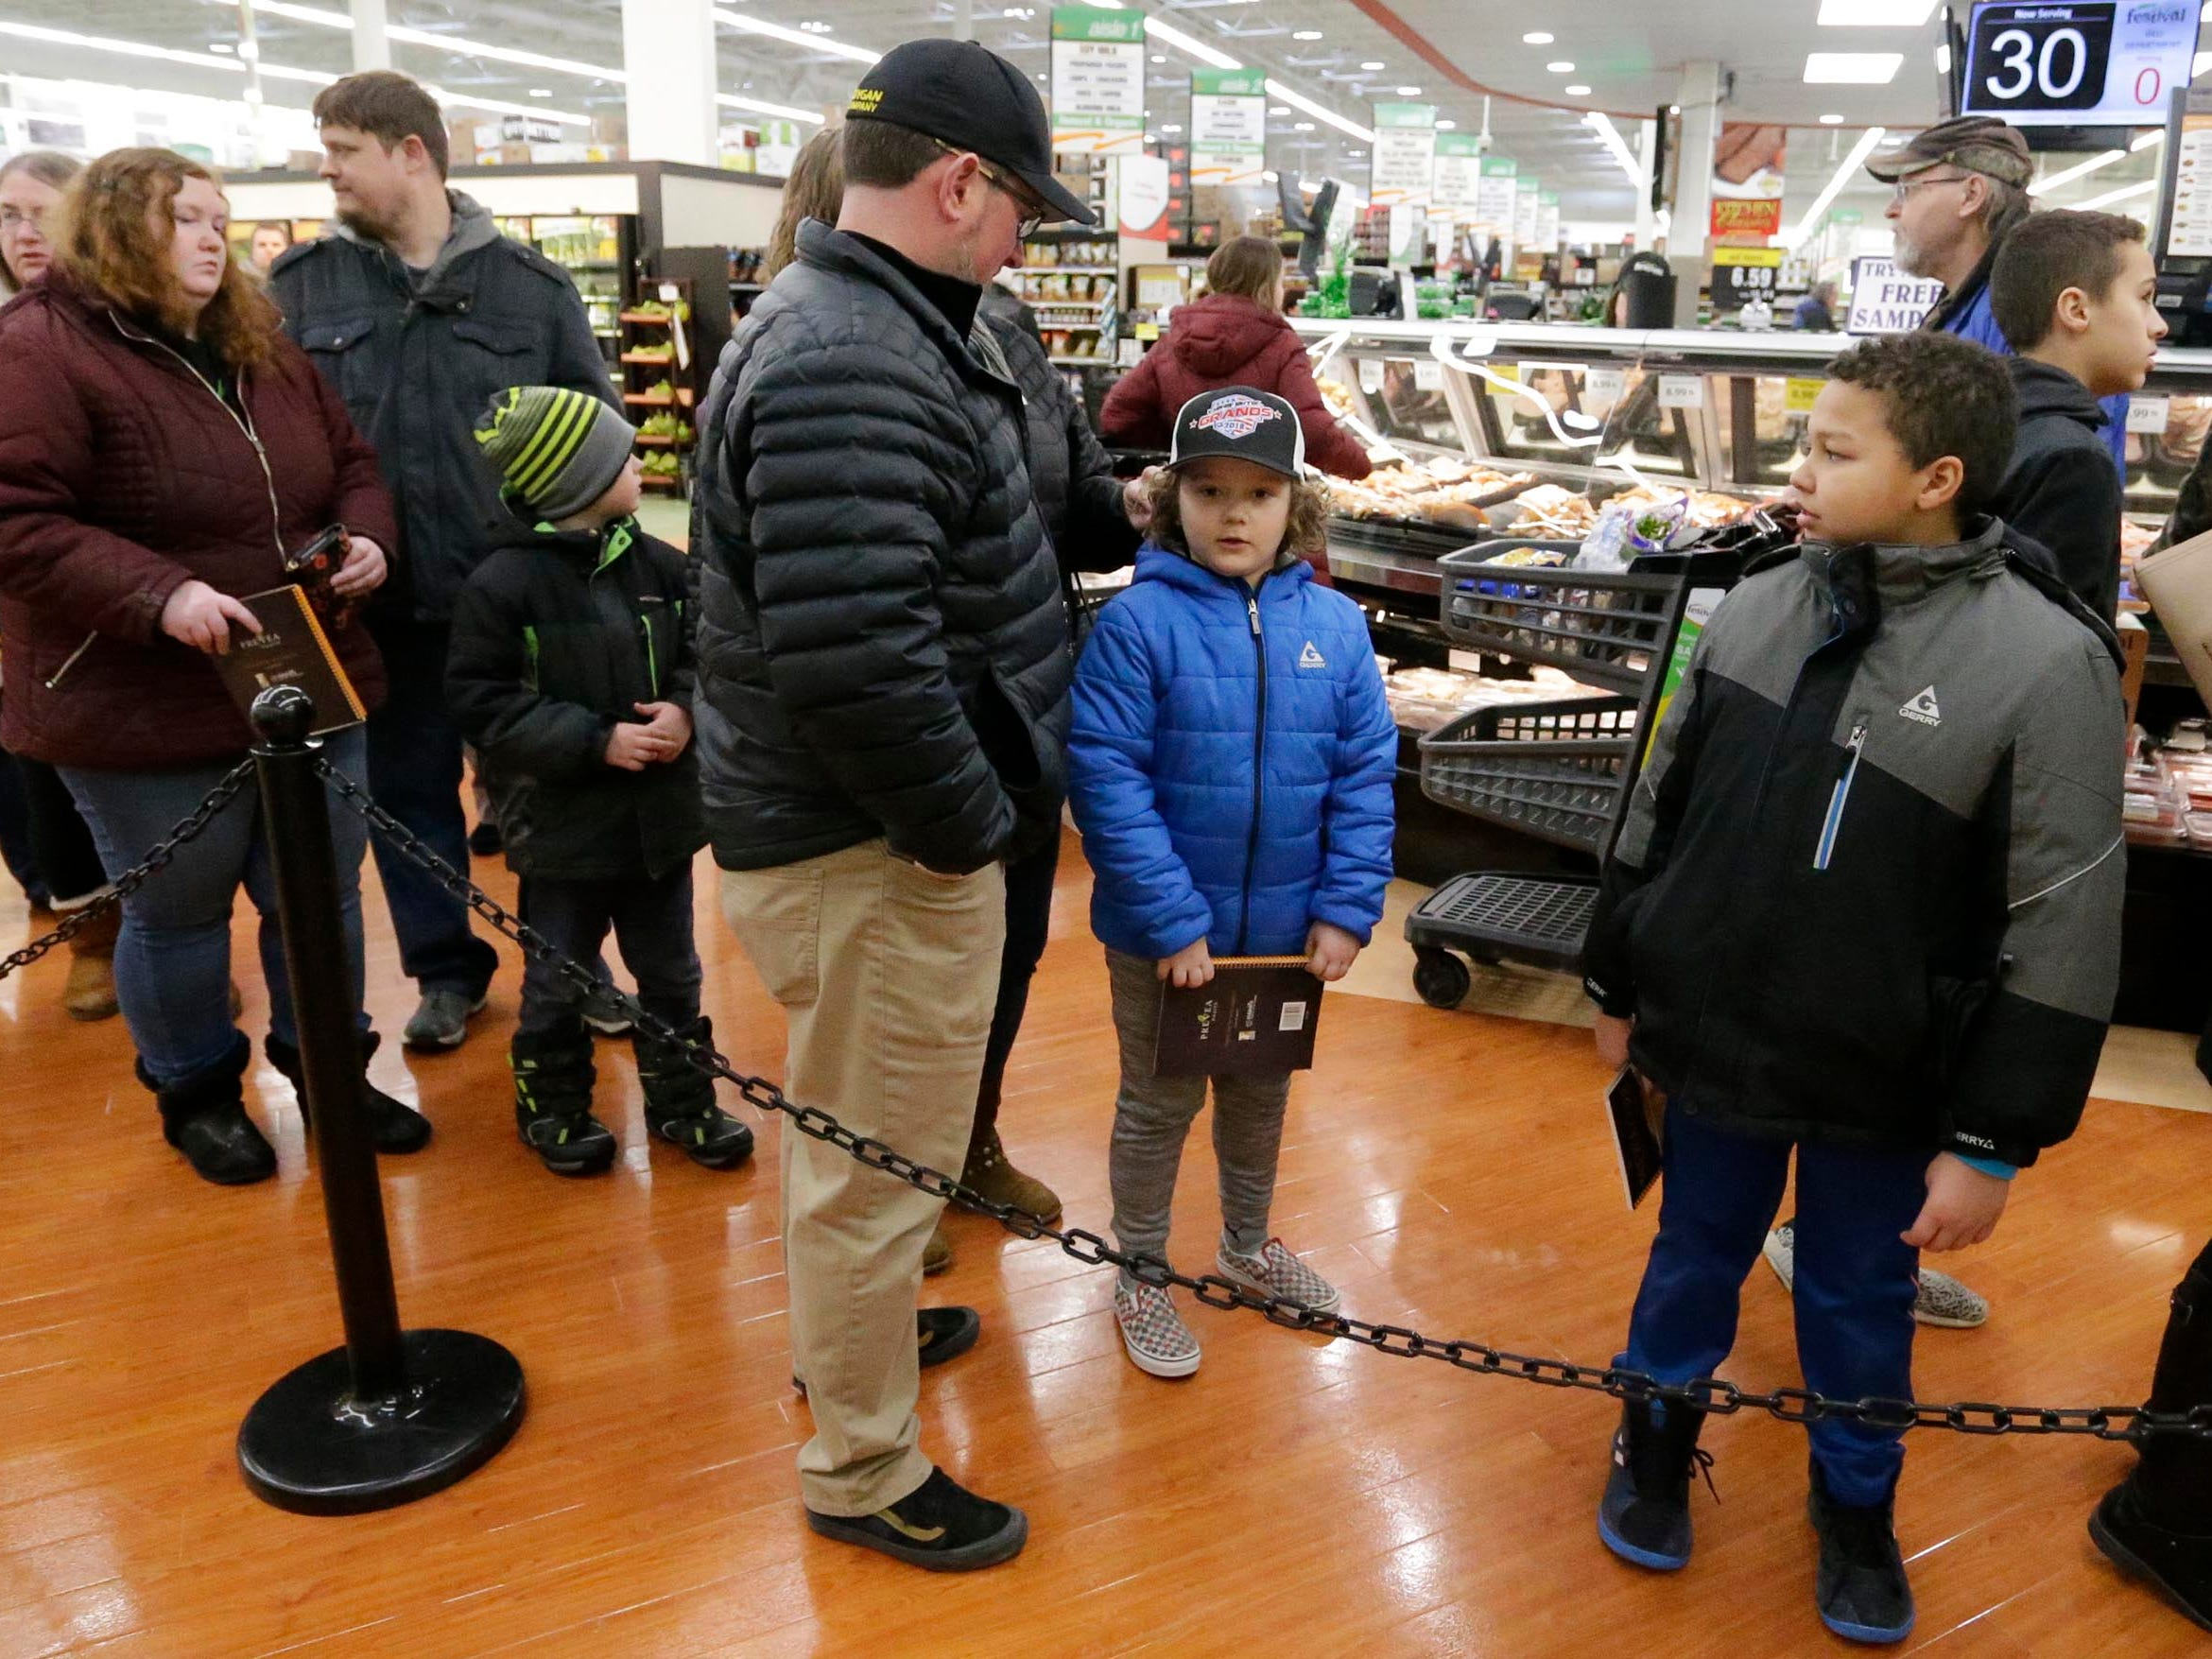 """People line up to have Green Bay Packer Randall Cobb sign his cookbook called, """"Prevea Gets Cooking with Cobb: Randall's Favorite Kid-Friendly Recipes"""", Thursday, February 28, 2019, in Sheboygan, Wis."""